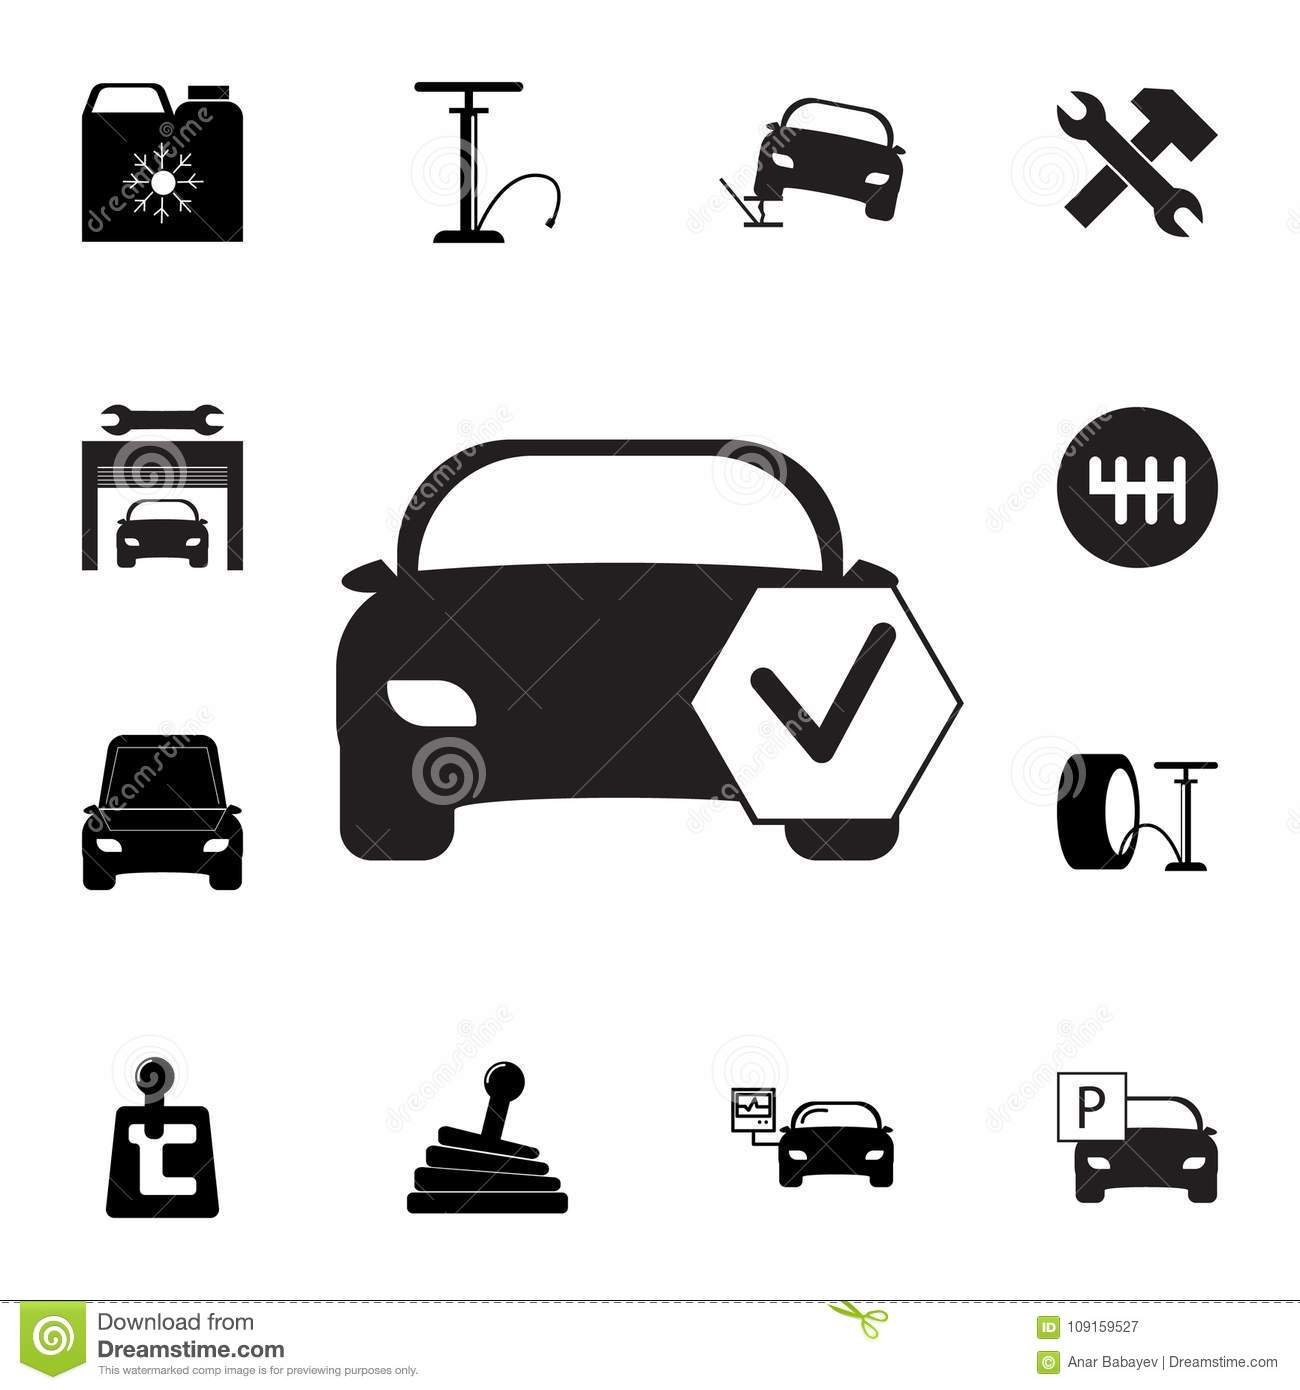 check car icon  set of car repair icons  signs  outline eco collection  simple icons for